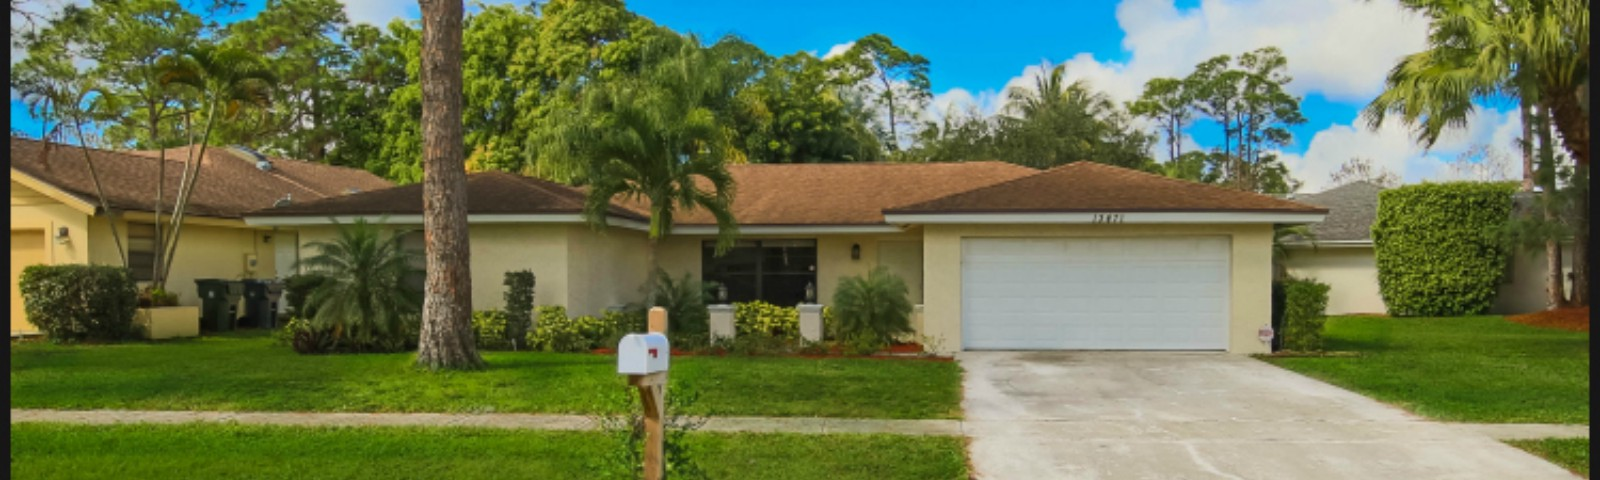 Sugar Pond Manor Home SOLD! 13471 Jonquil Place, Wellington, Florida 33414